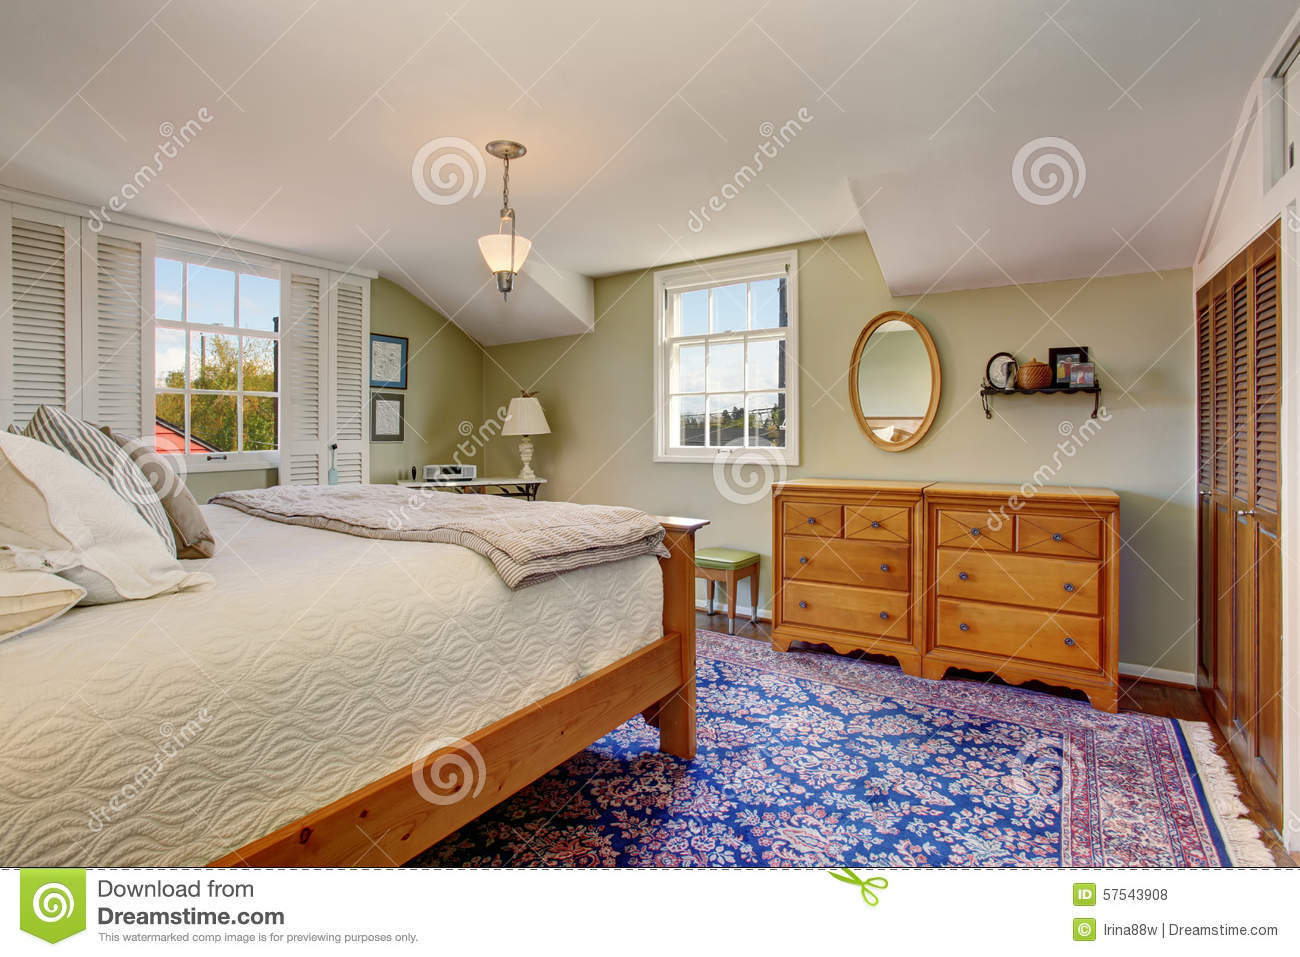 vintage themed bedroom with blue decorative rug and white bedding